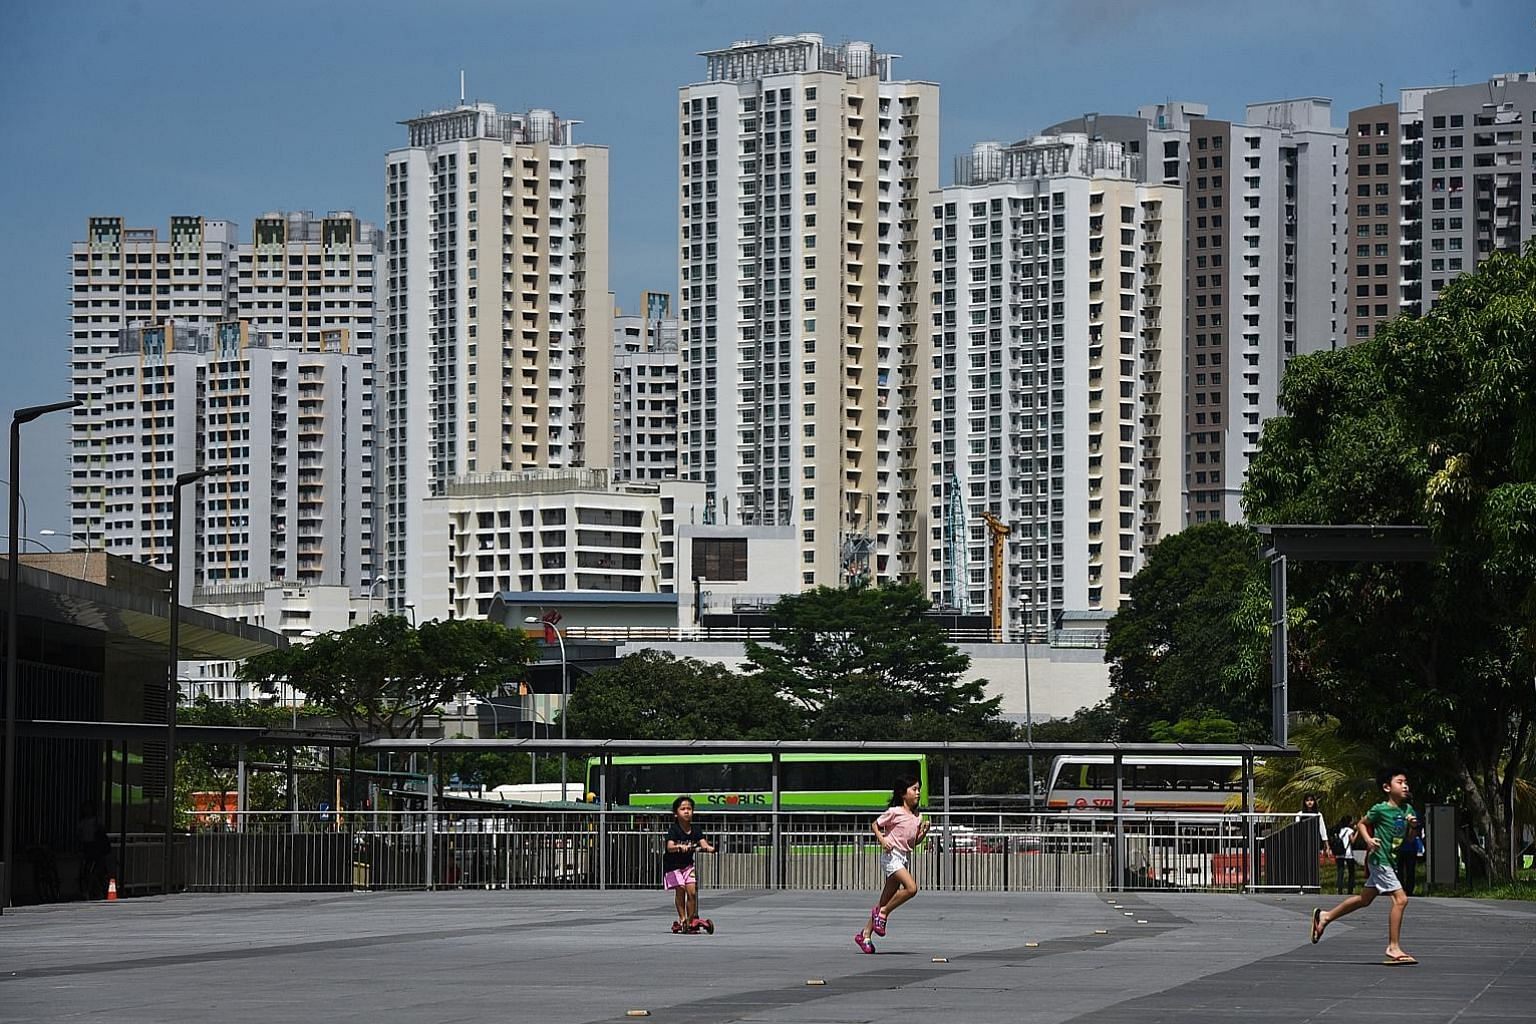 There were 6,276 HDB resale transactions in the second quarter, up 29.8 per cent from the 4,835 in the first quarter. The figure was also 5.6 per cent higher than the resale transactions in the second quarter of last year.